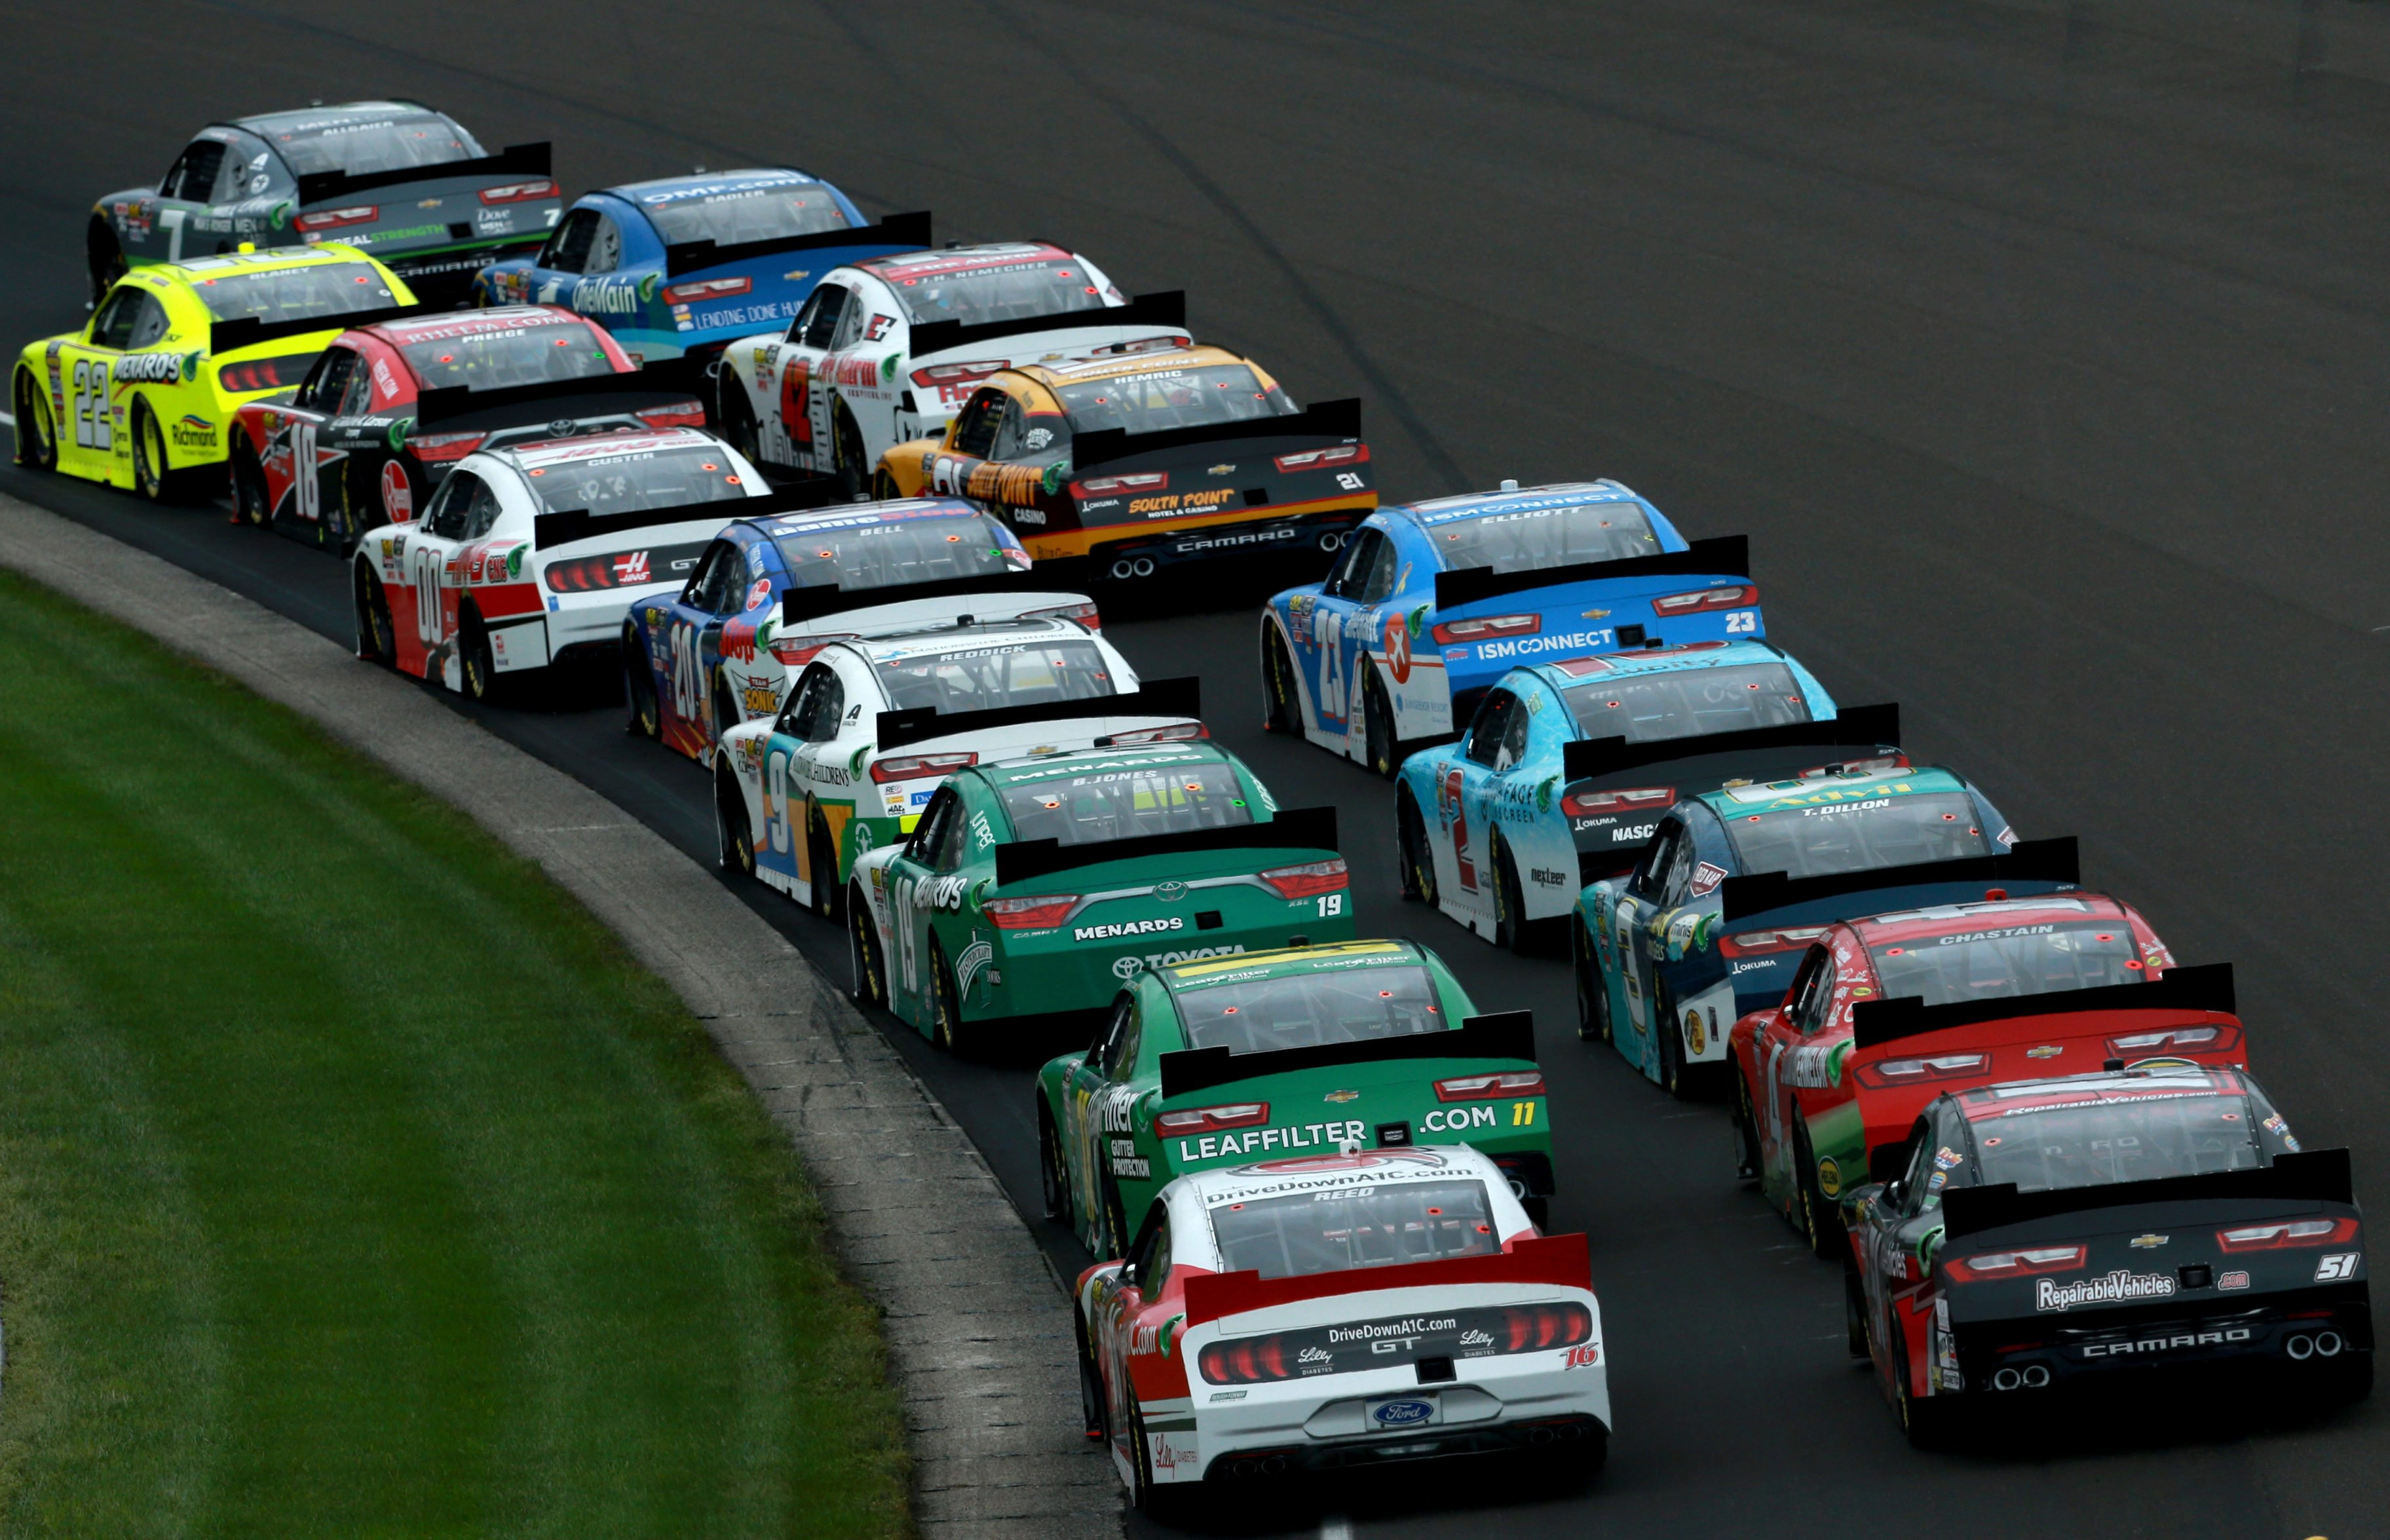 NASCAR Xfinity Series at Indianapolis Motor Speedway - Justin Allgaier and Ryan Blaney lead